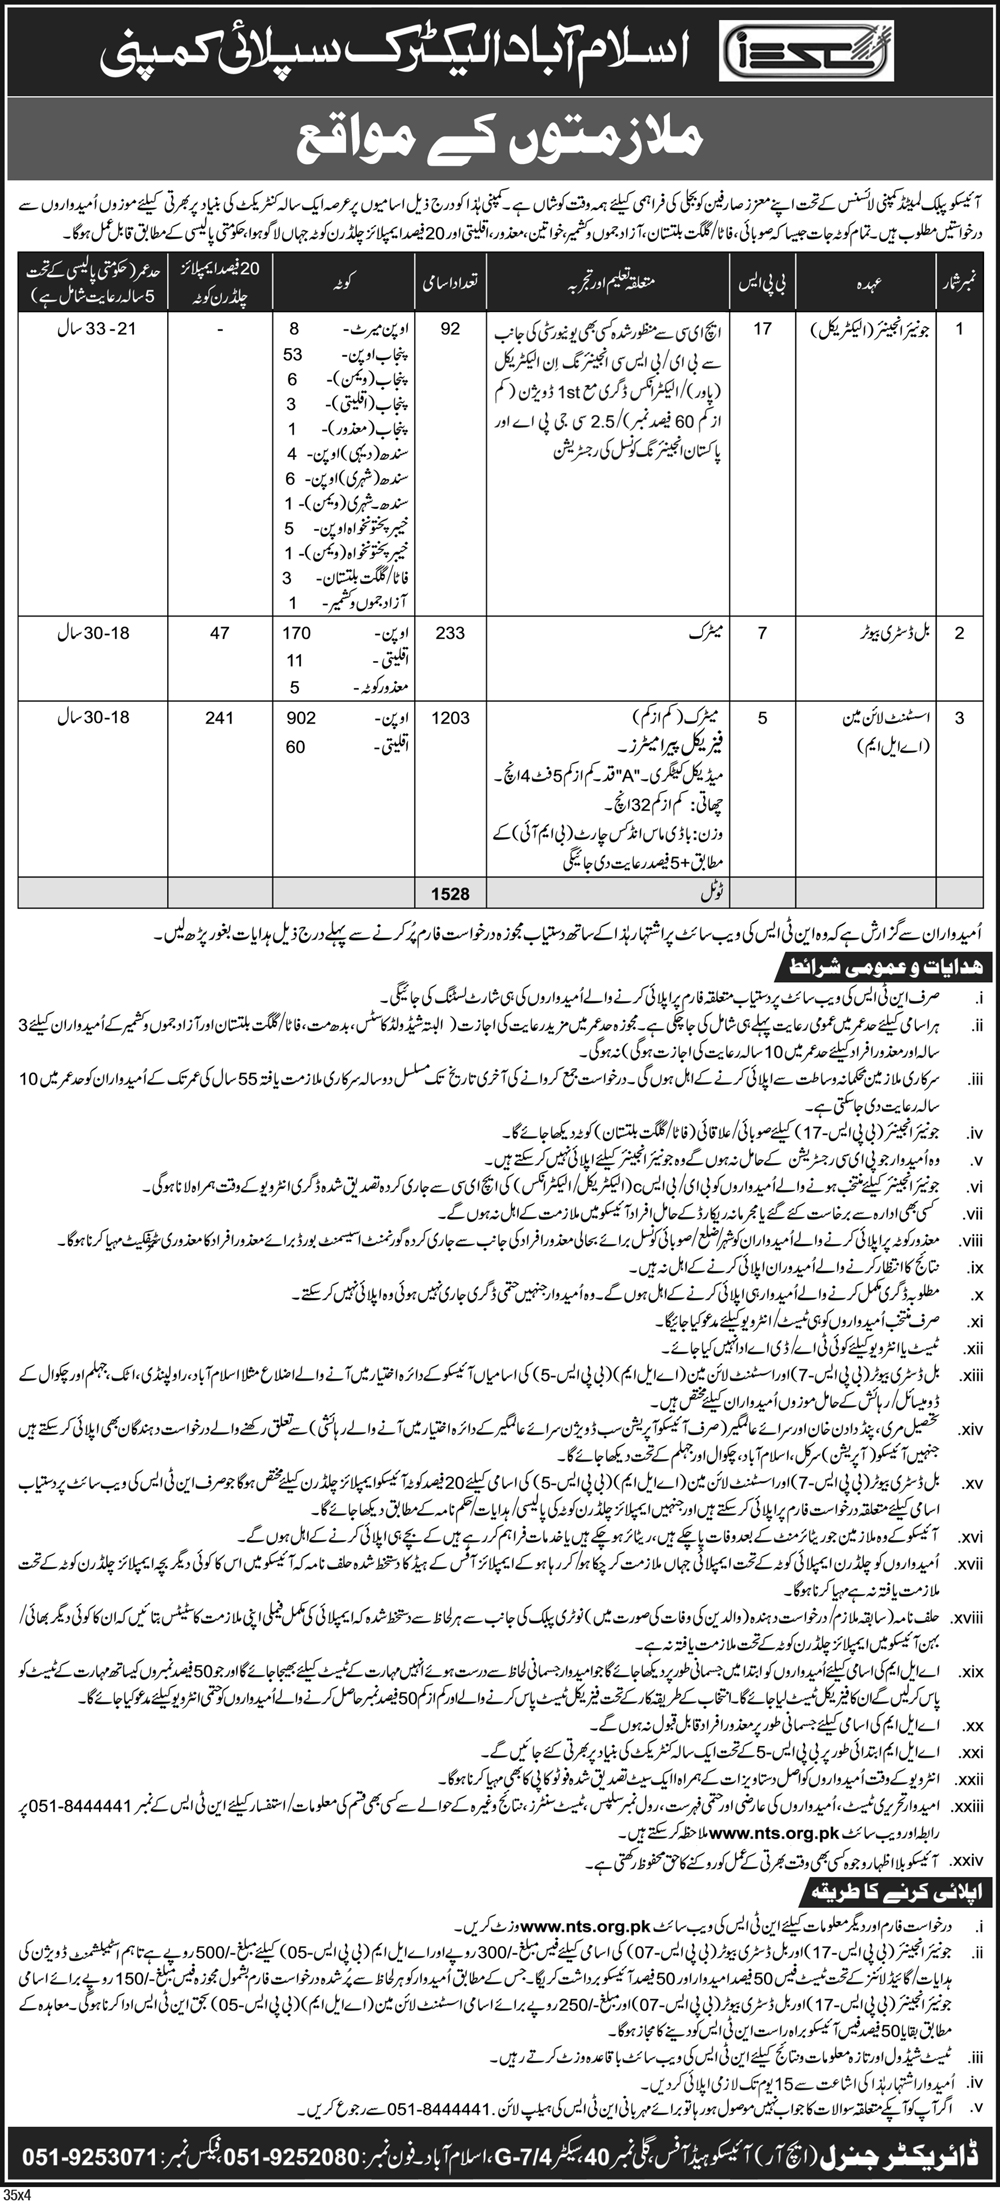 Islamabad Electric Supply Company LESCO Jobs 2019 application form Eligibility Criteria